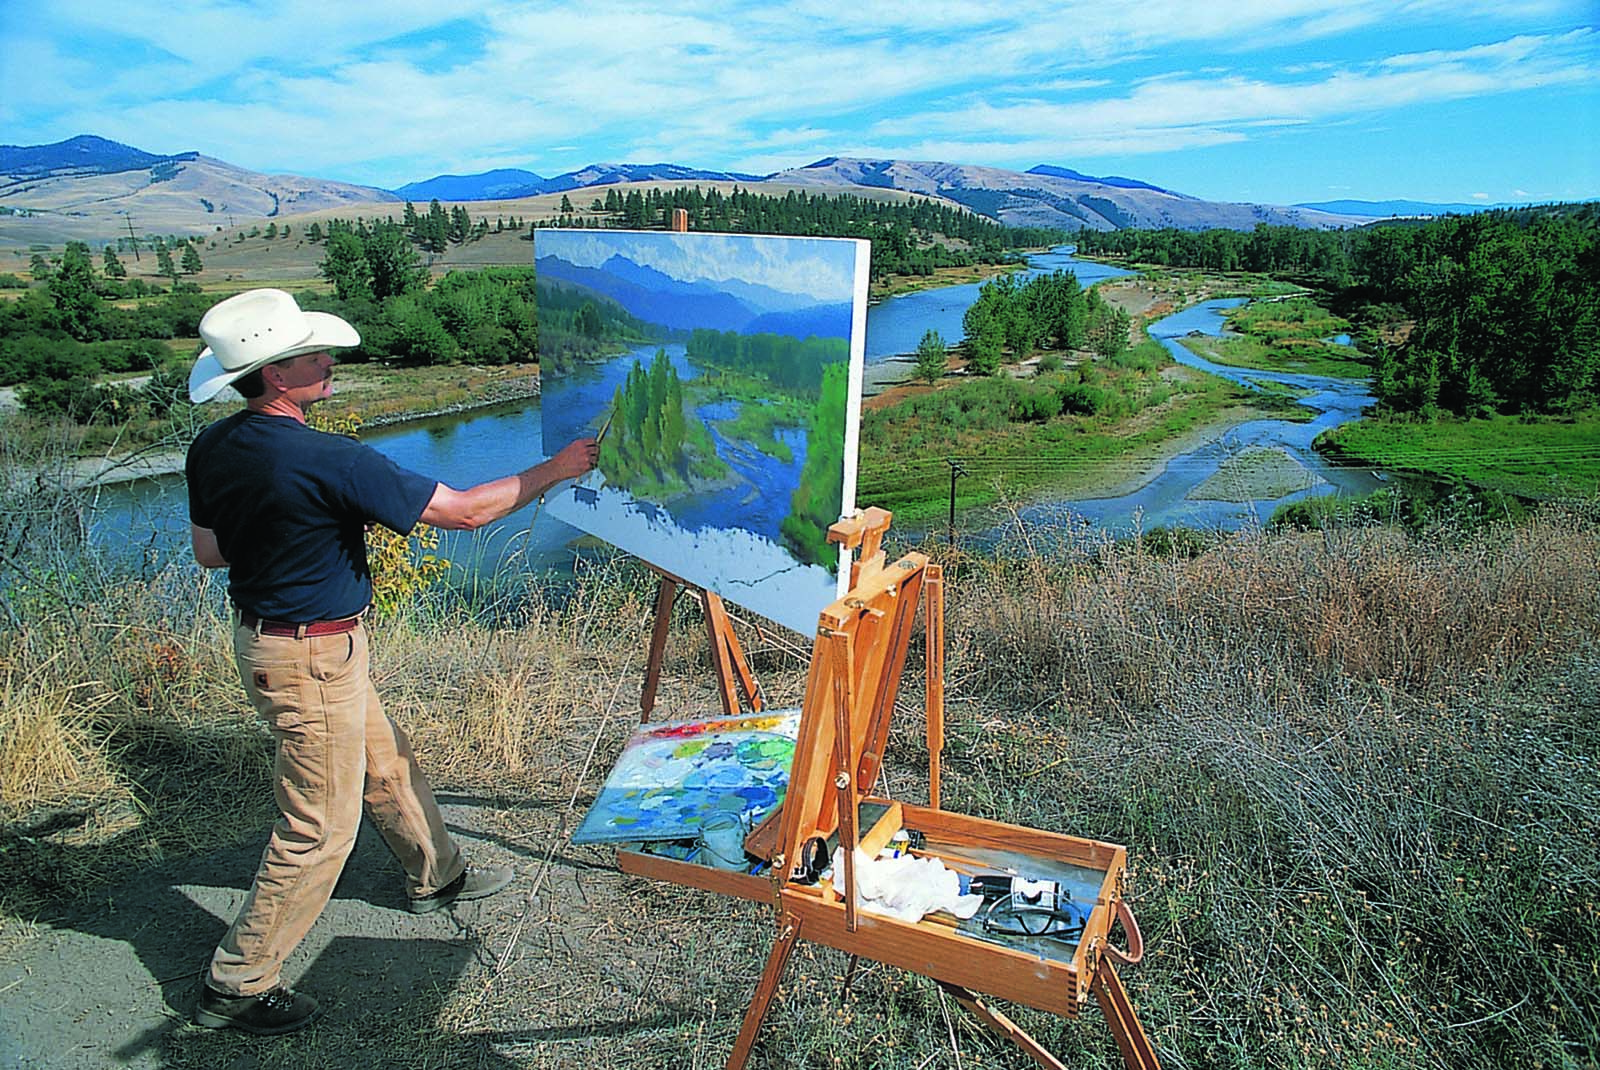 Charles Fritz painting at Traveler's Rest, just west of Lolo, Montana, one of the camping sites of Lewis and Clark and the Corps of Discovery. Photo courtesy Charles Fritz.